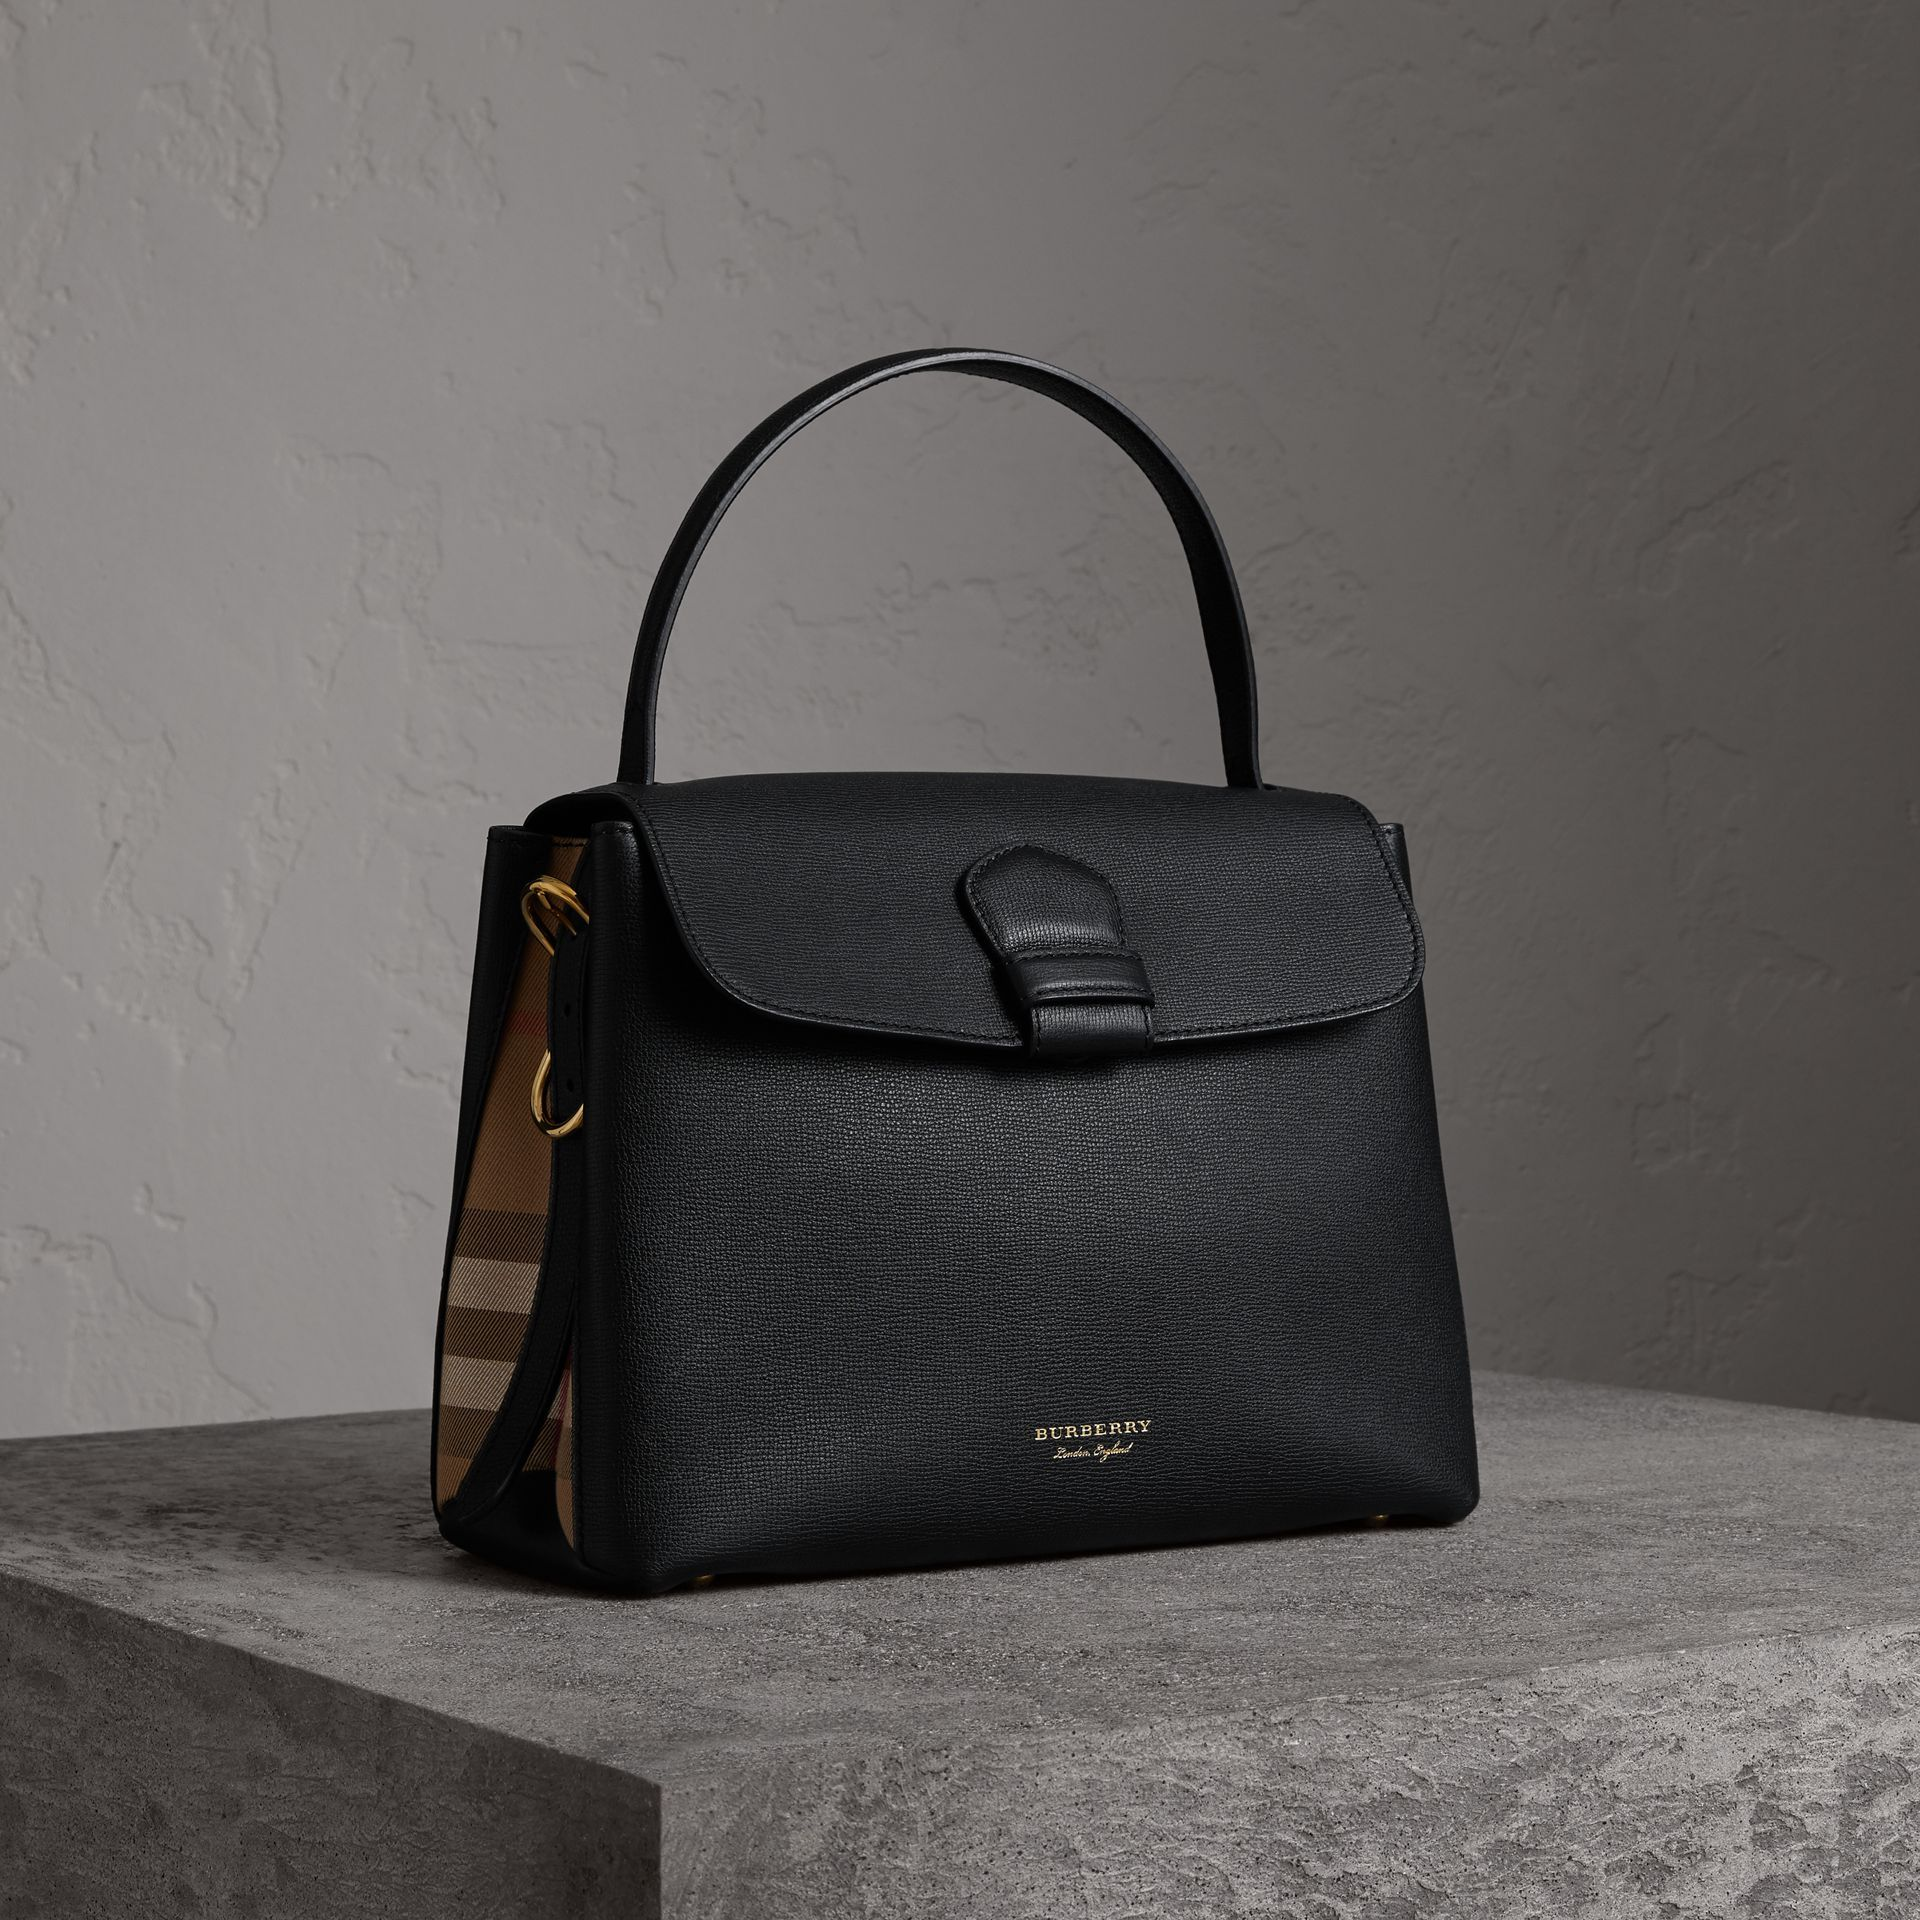 33494639ea2 Medium Grainy Leather and House Check Tote Bag in Black - Women   Burberry  Singapore